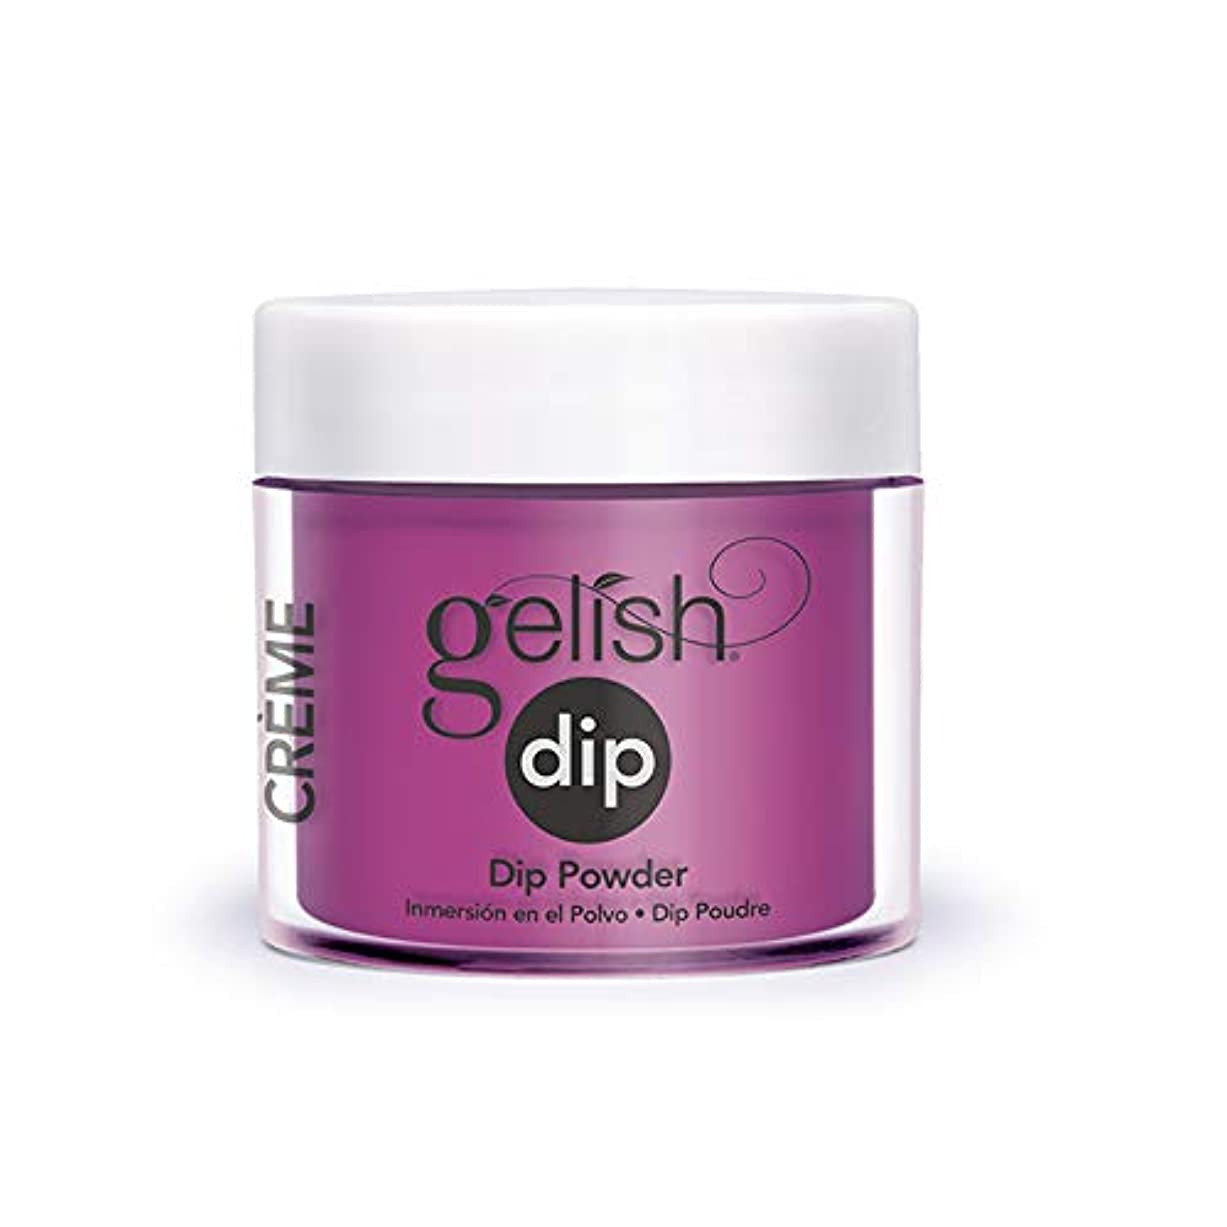 体操選手順応性のある画家Harmony Gelish - Acrylic Dip Powder - Rendezvous - 23g / 0.8oz